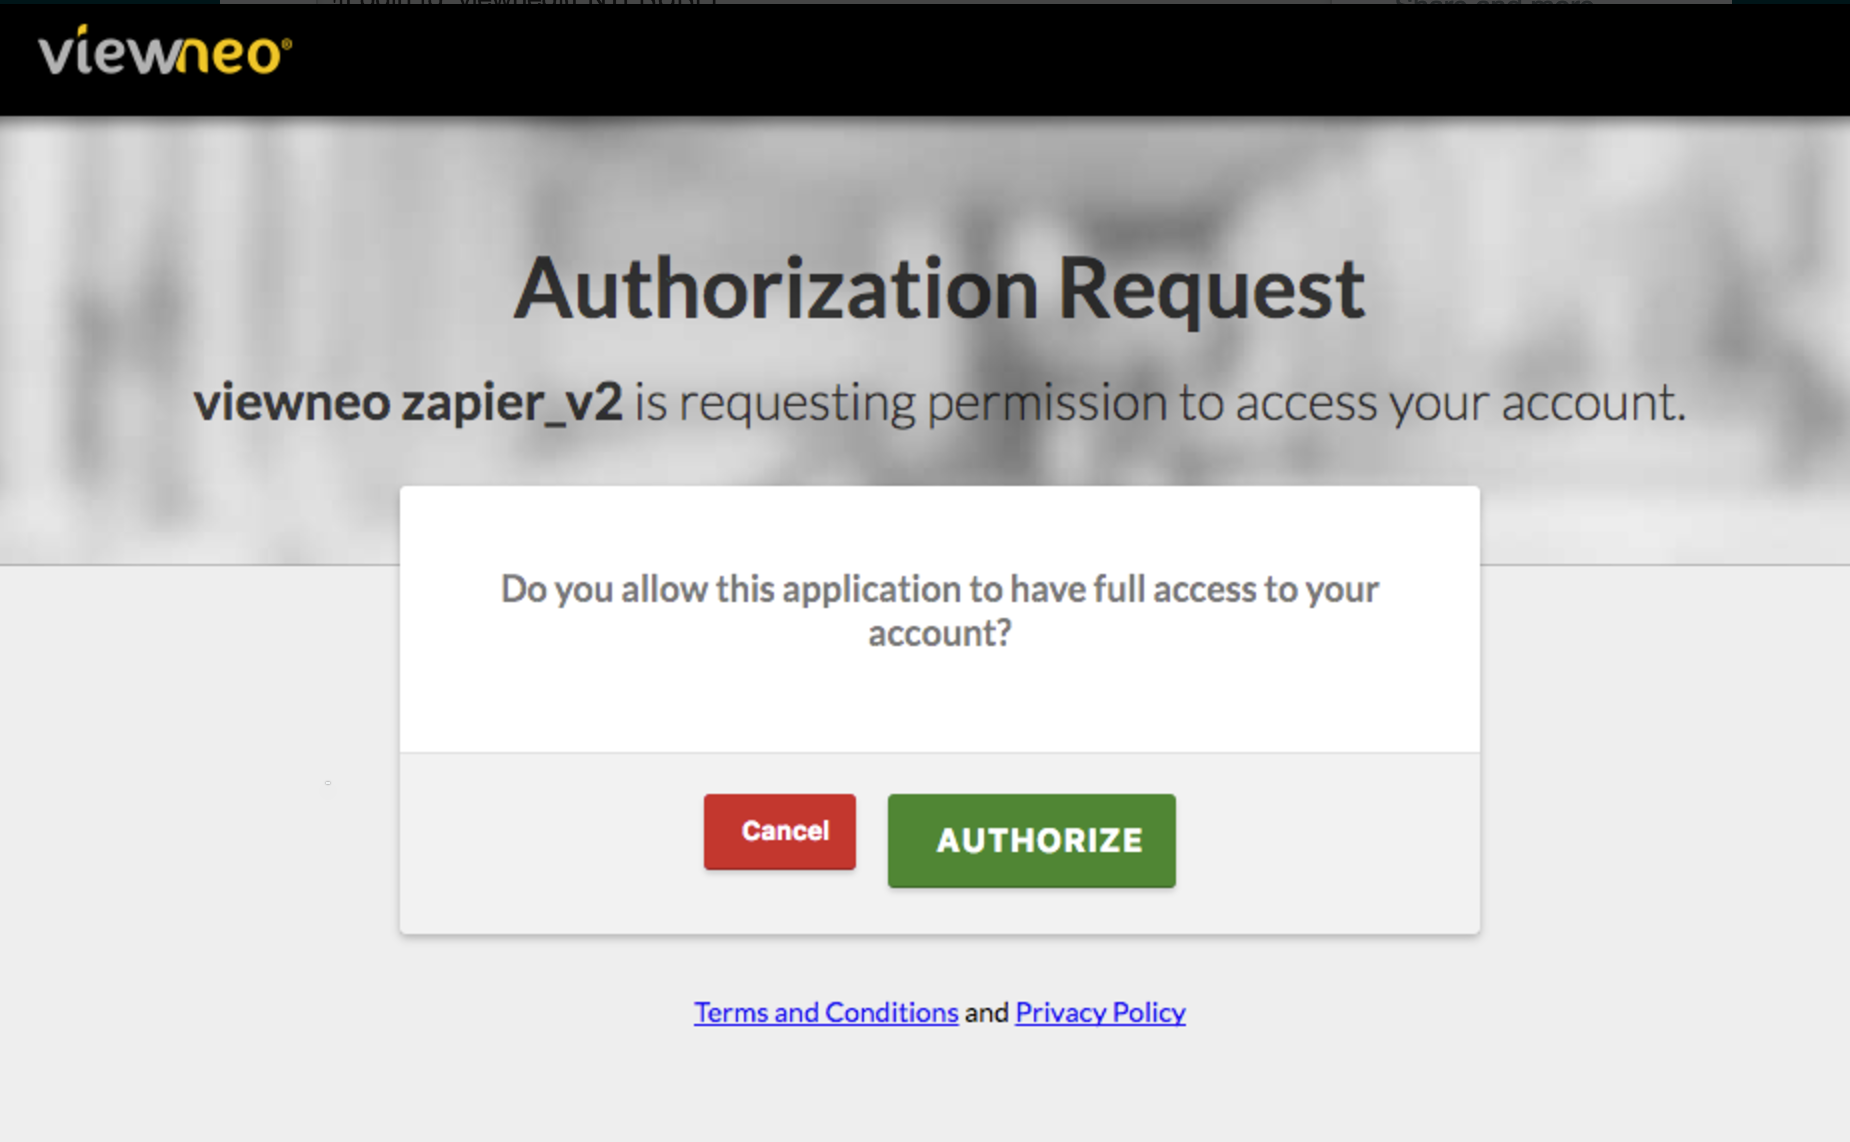 Authorize viewneo on Zapier